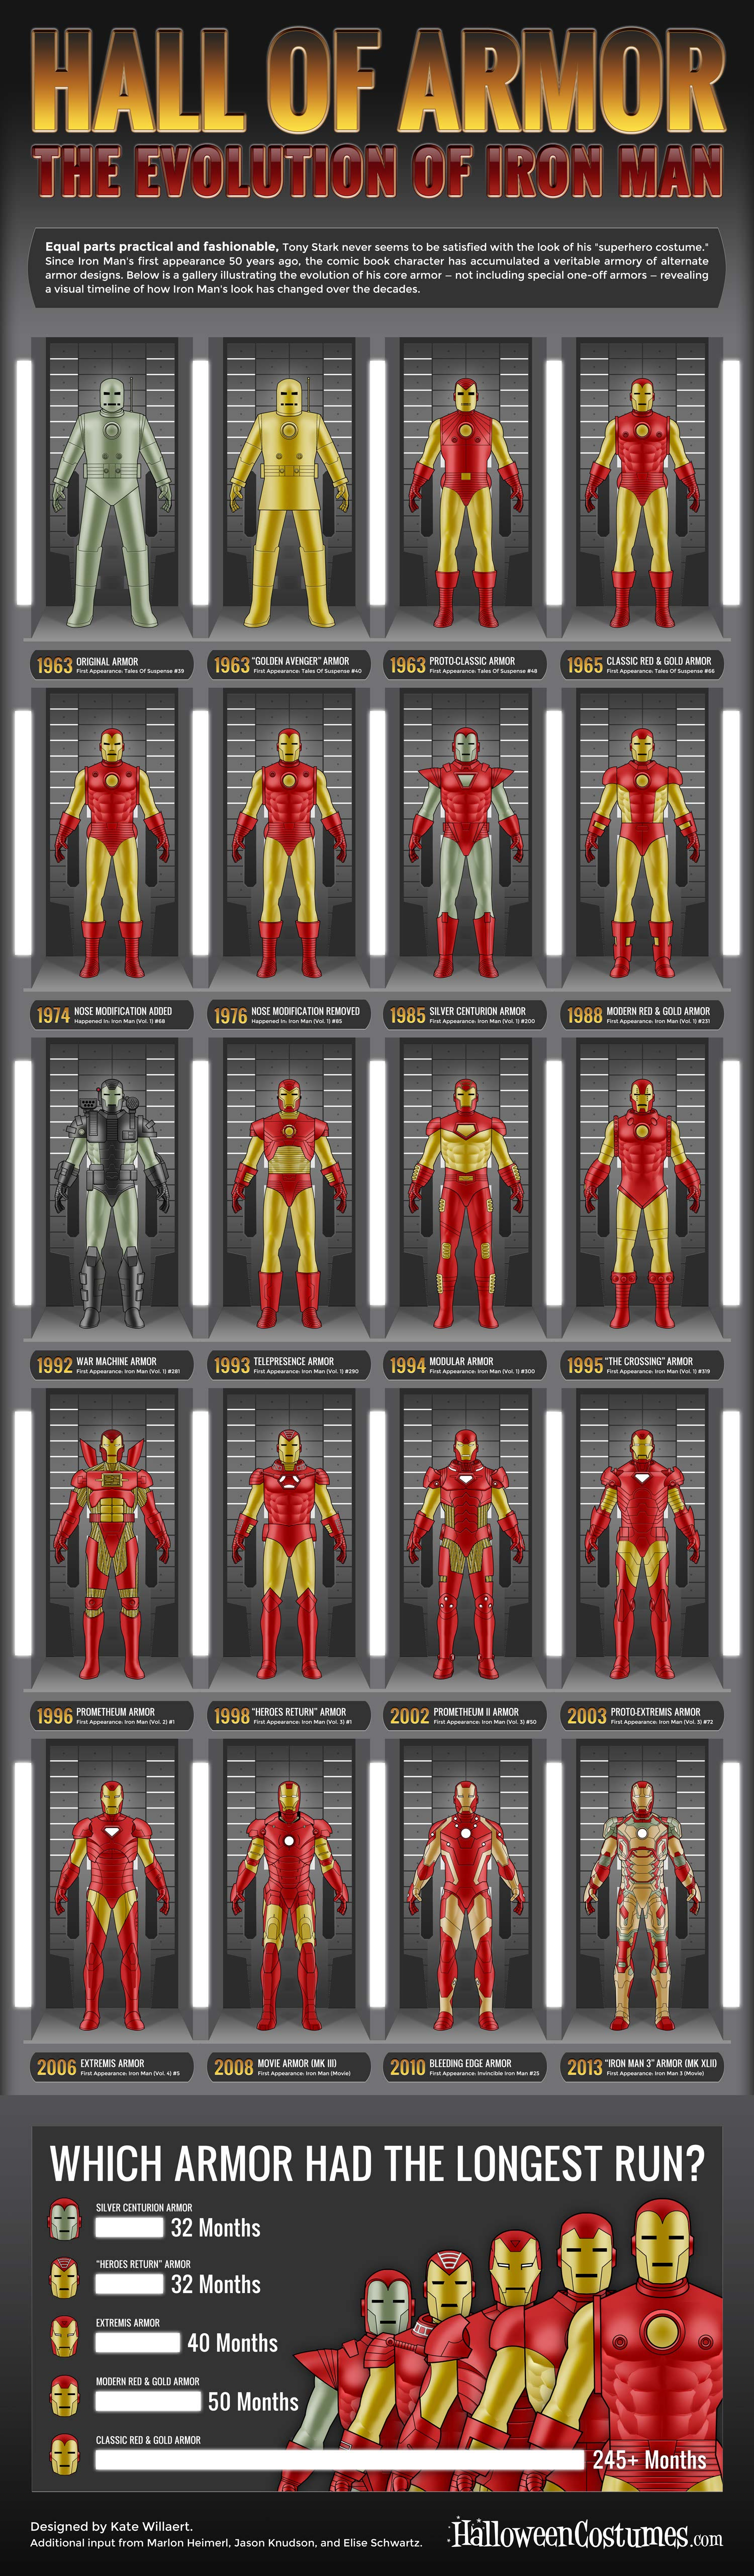 Iron Man Armor Evolution-Infographic